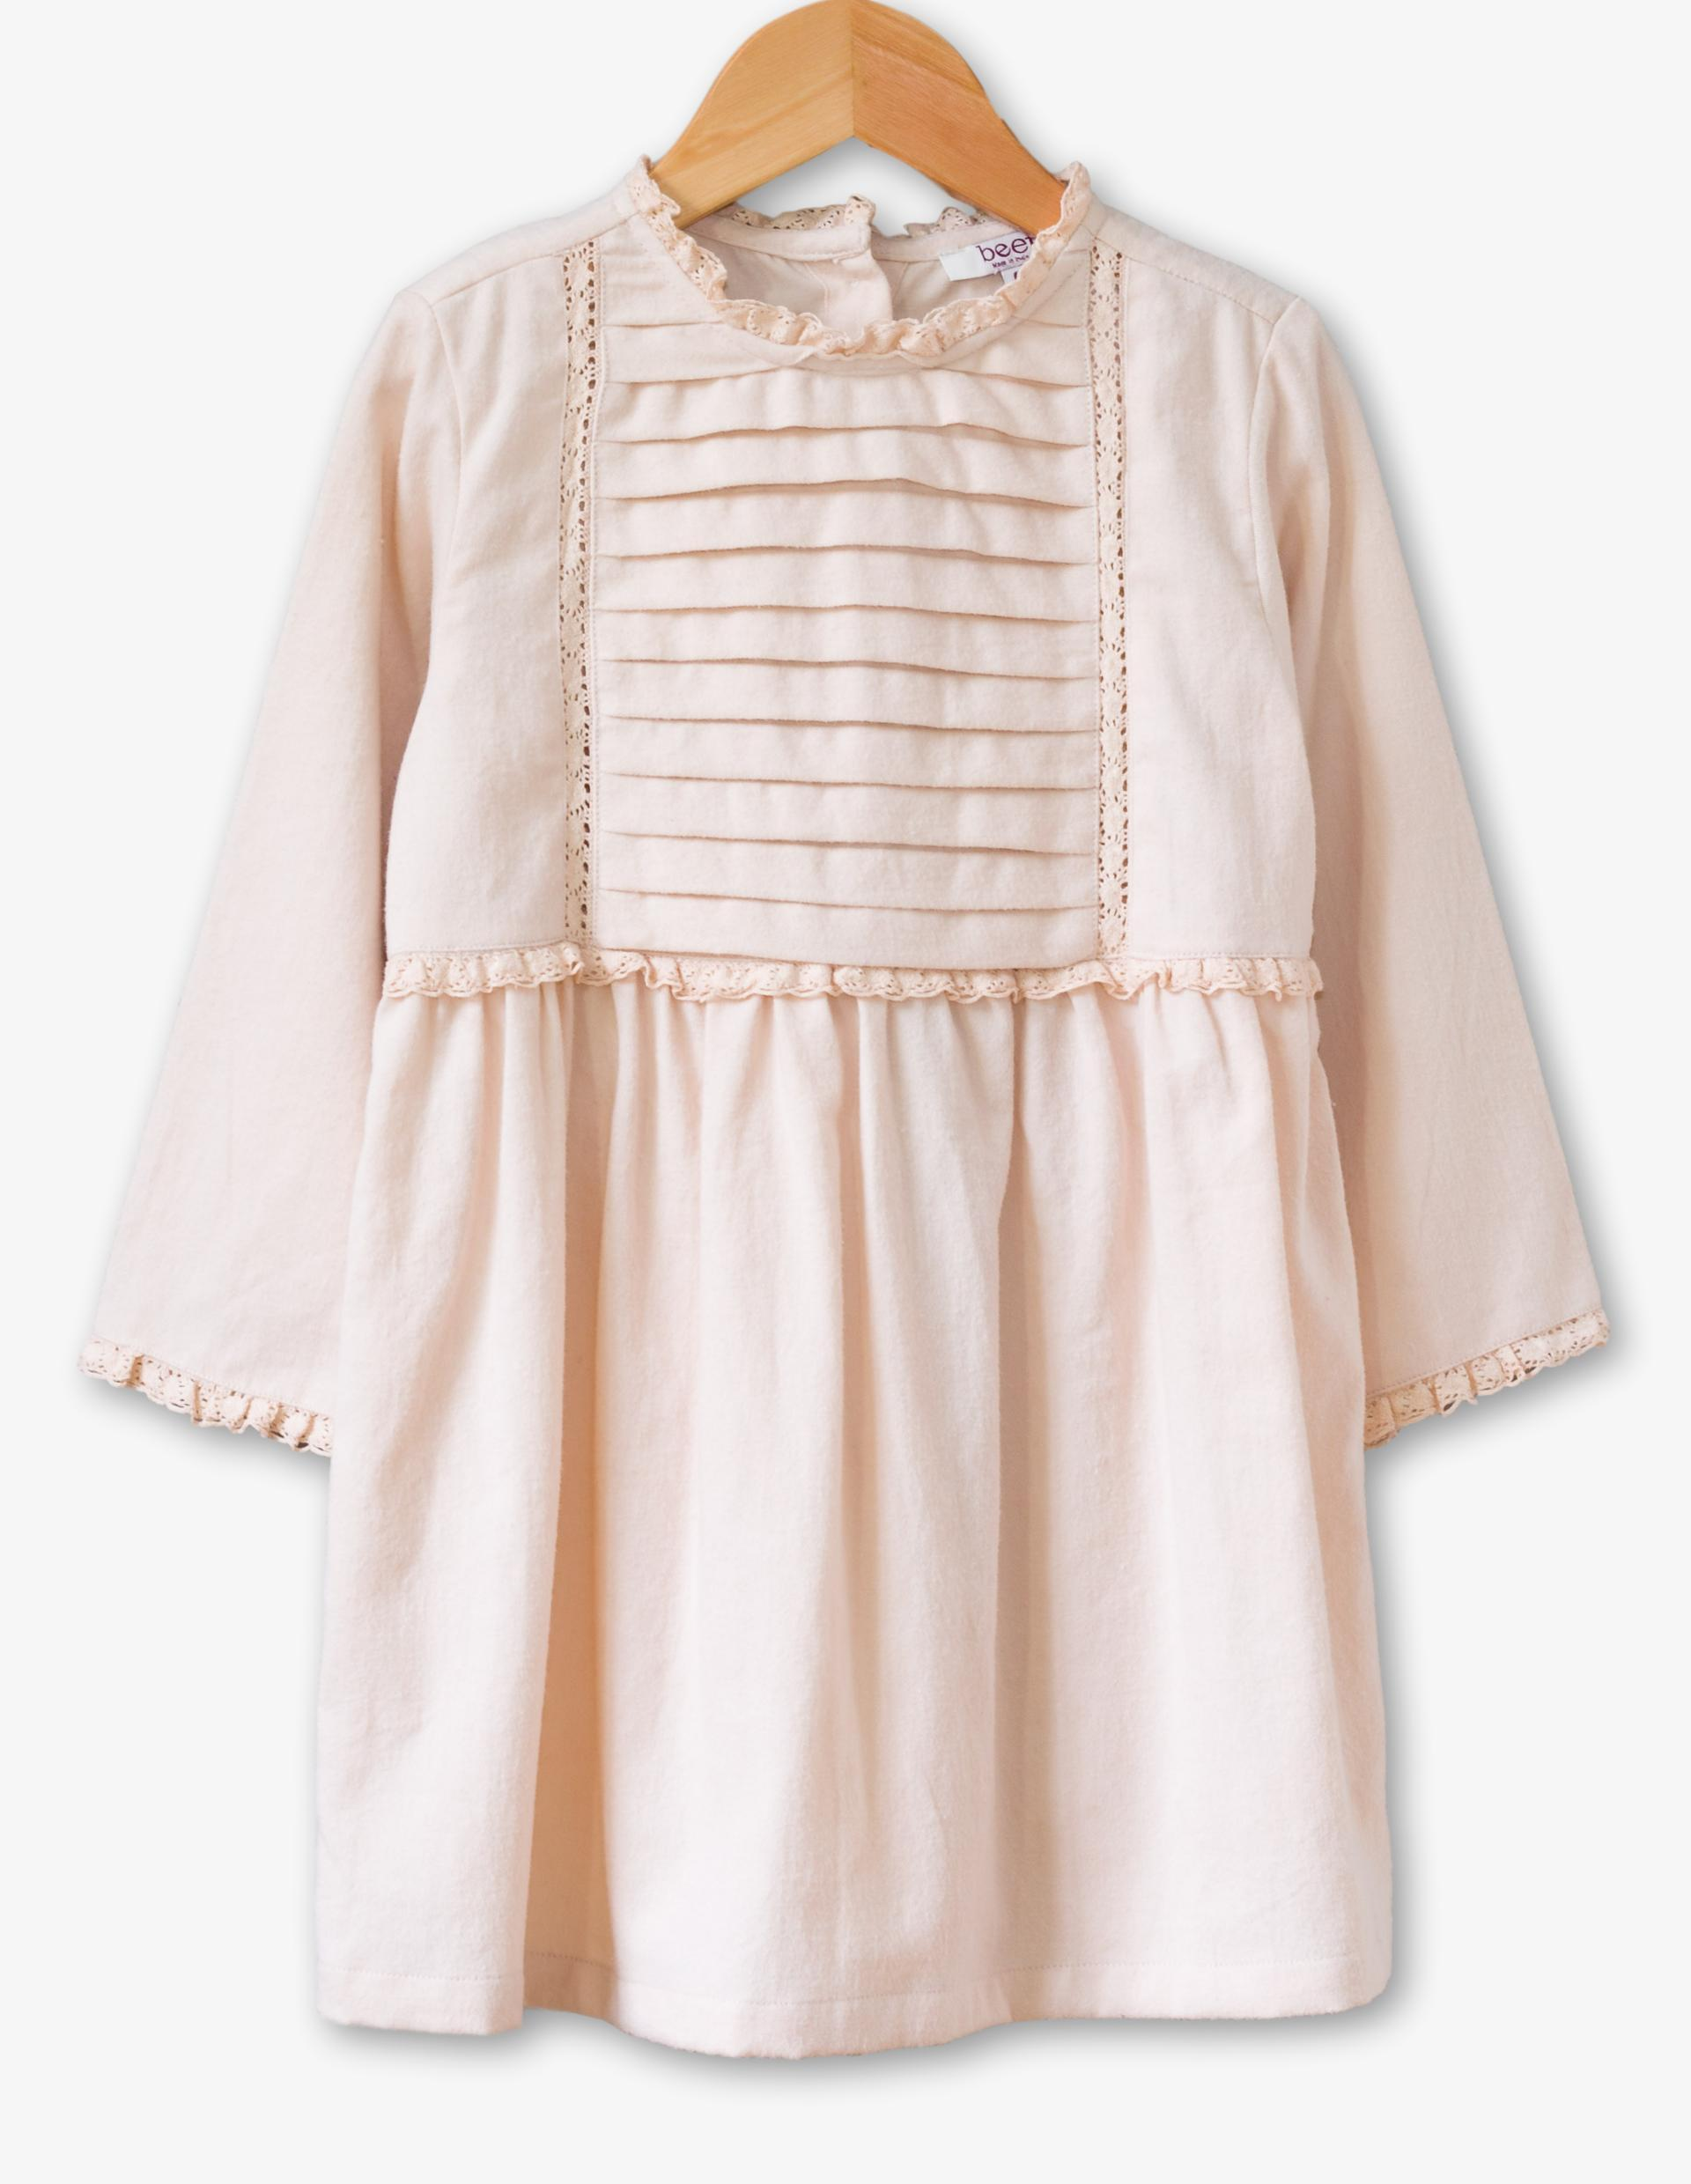 <p>FOR LITTLE MISS. How darling is this Lulu Dress in Blush from Beet World! A lovely one to dress up or dress down. It's made from dreamy soft twill fabric for a cozy feel on nippy days and features a beautiful warm blush color and delicate lace detail. Price: $45.{&nbsp;} (Image: Beet World){&nbsp;}</p><p></p>